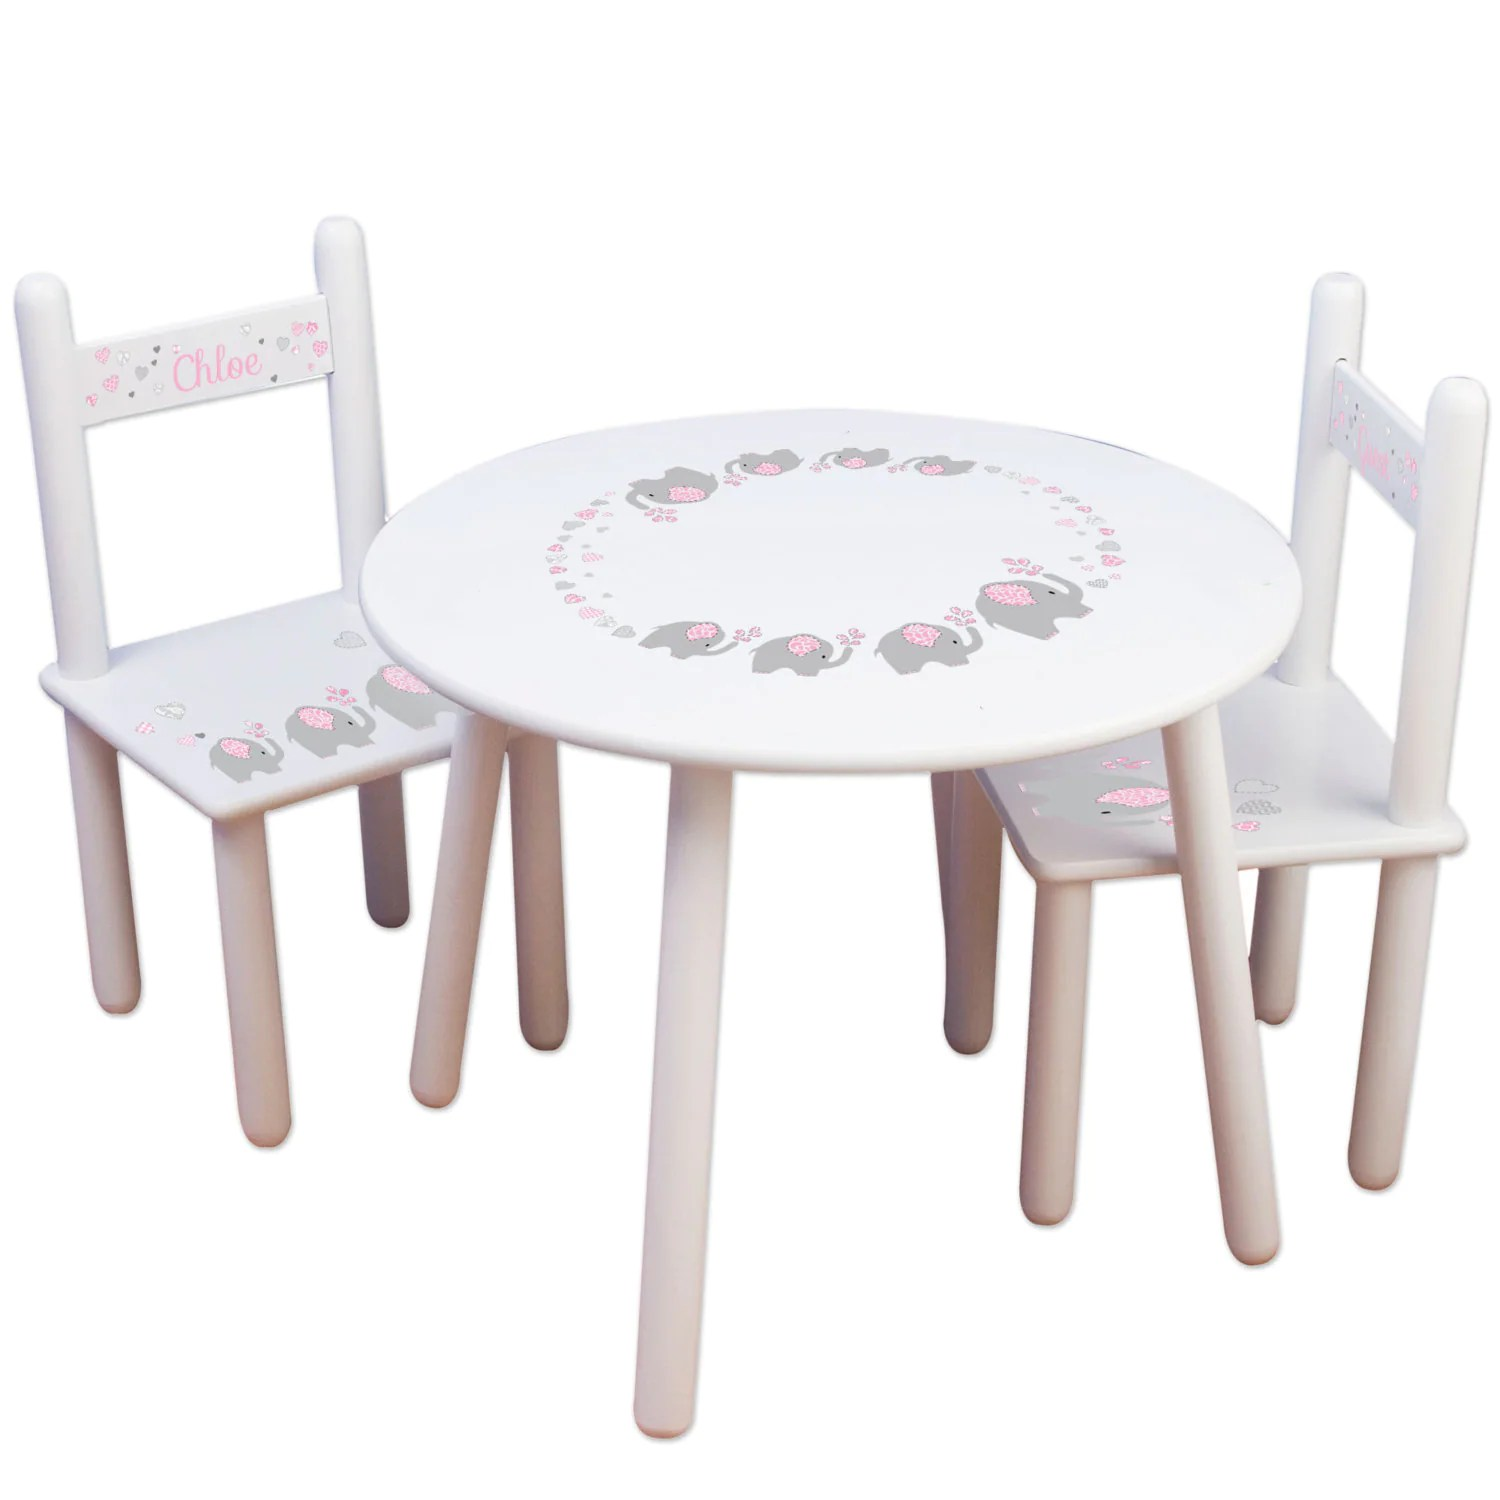 Childrens Table And Chair Set Kids Table And Chair Set Kids Furniture For Elephant Nursery Gray Bedroom Child S Round Table Personalized Chairs Elephant Decor Tableset303